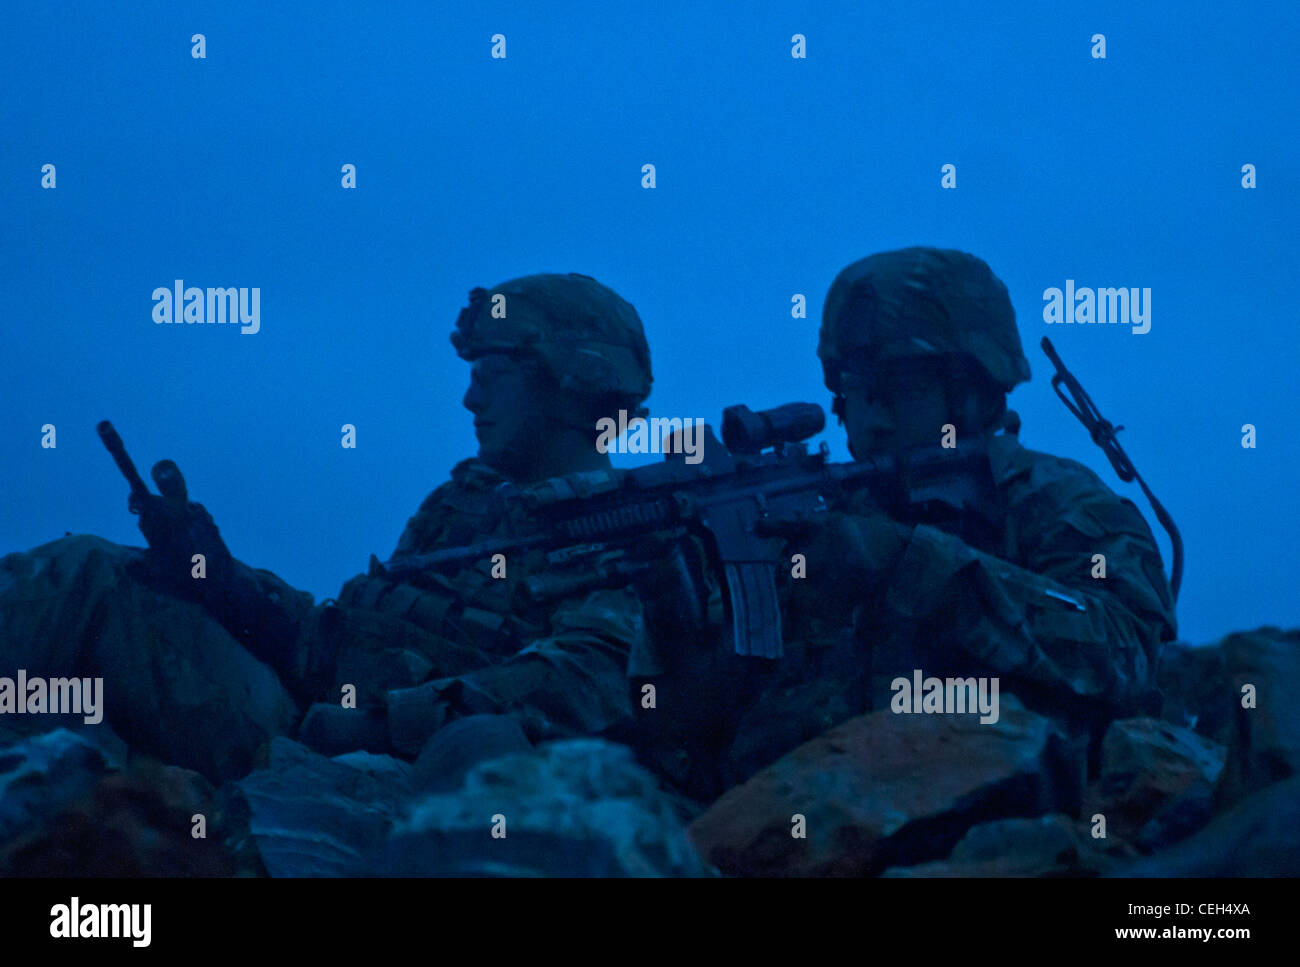 U.S. Army Sgt. Aaron Sweeny, from San Diego, Calif., and Staff Sgt. Robert Novak, from Temple, Texas, with 3rd Platoon, - Stock Image